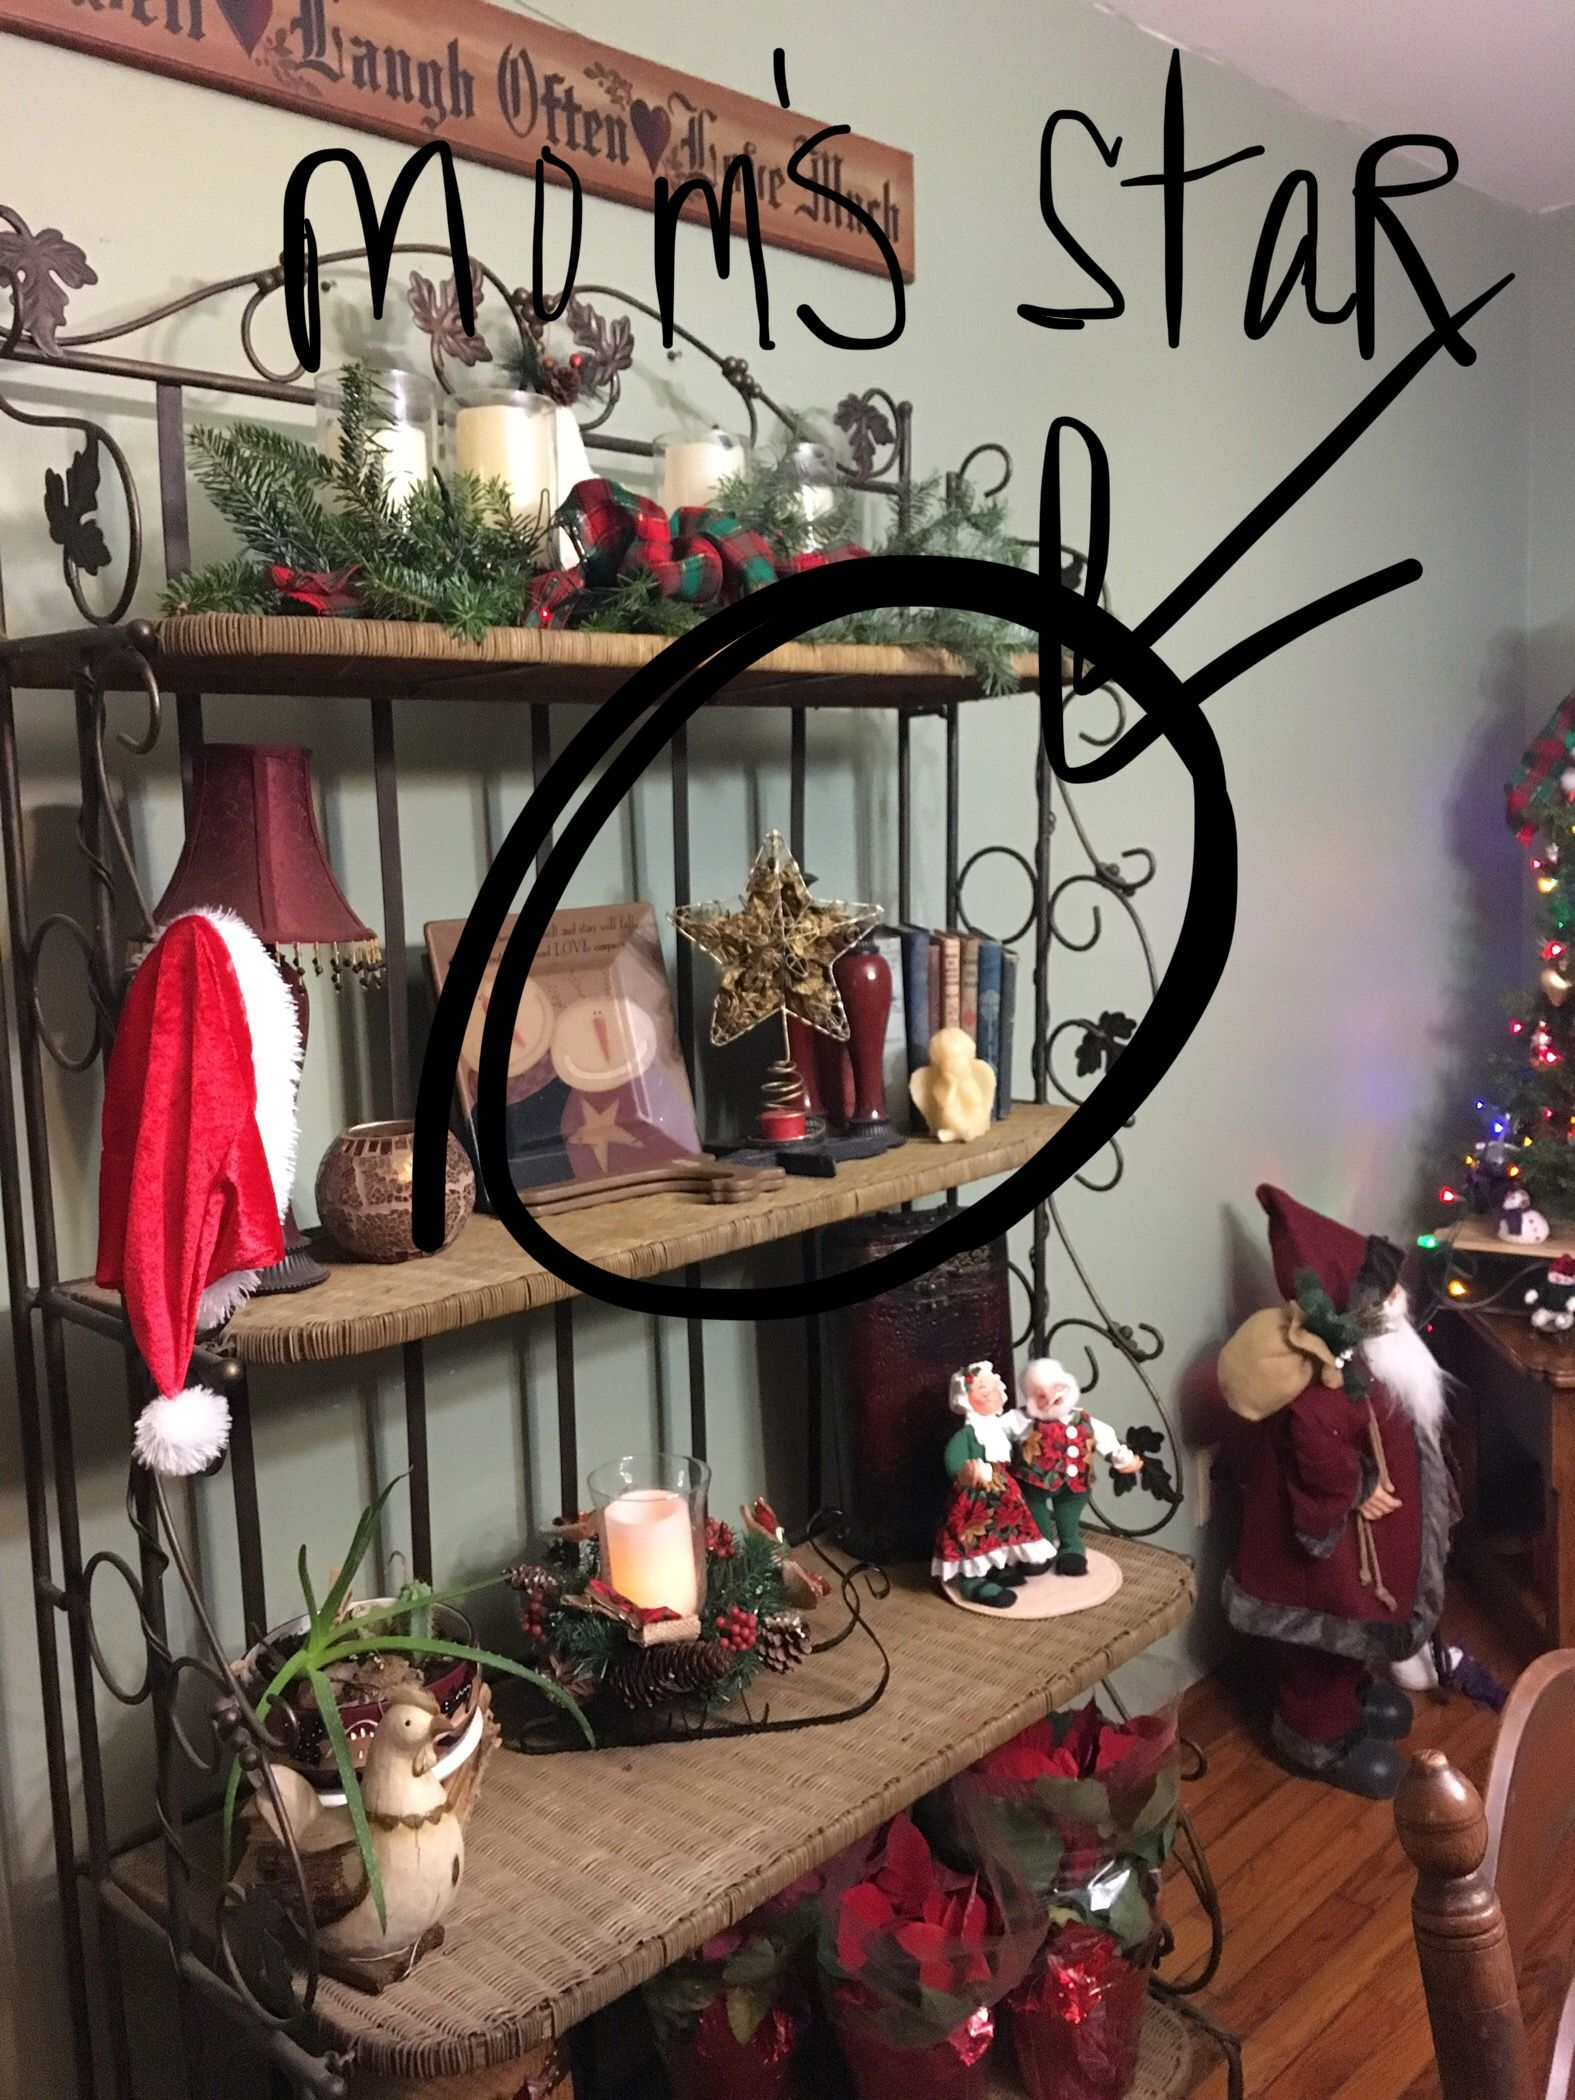 Pin by Pam Brownreiche on Xmas decor Xmas decorations